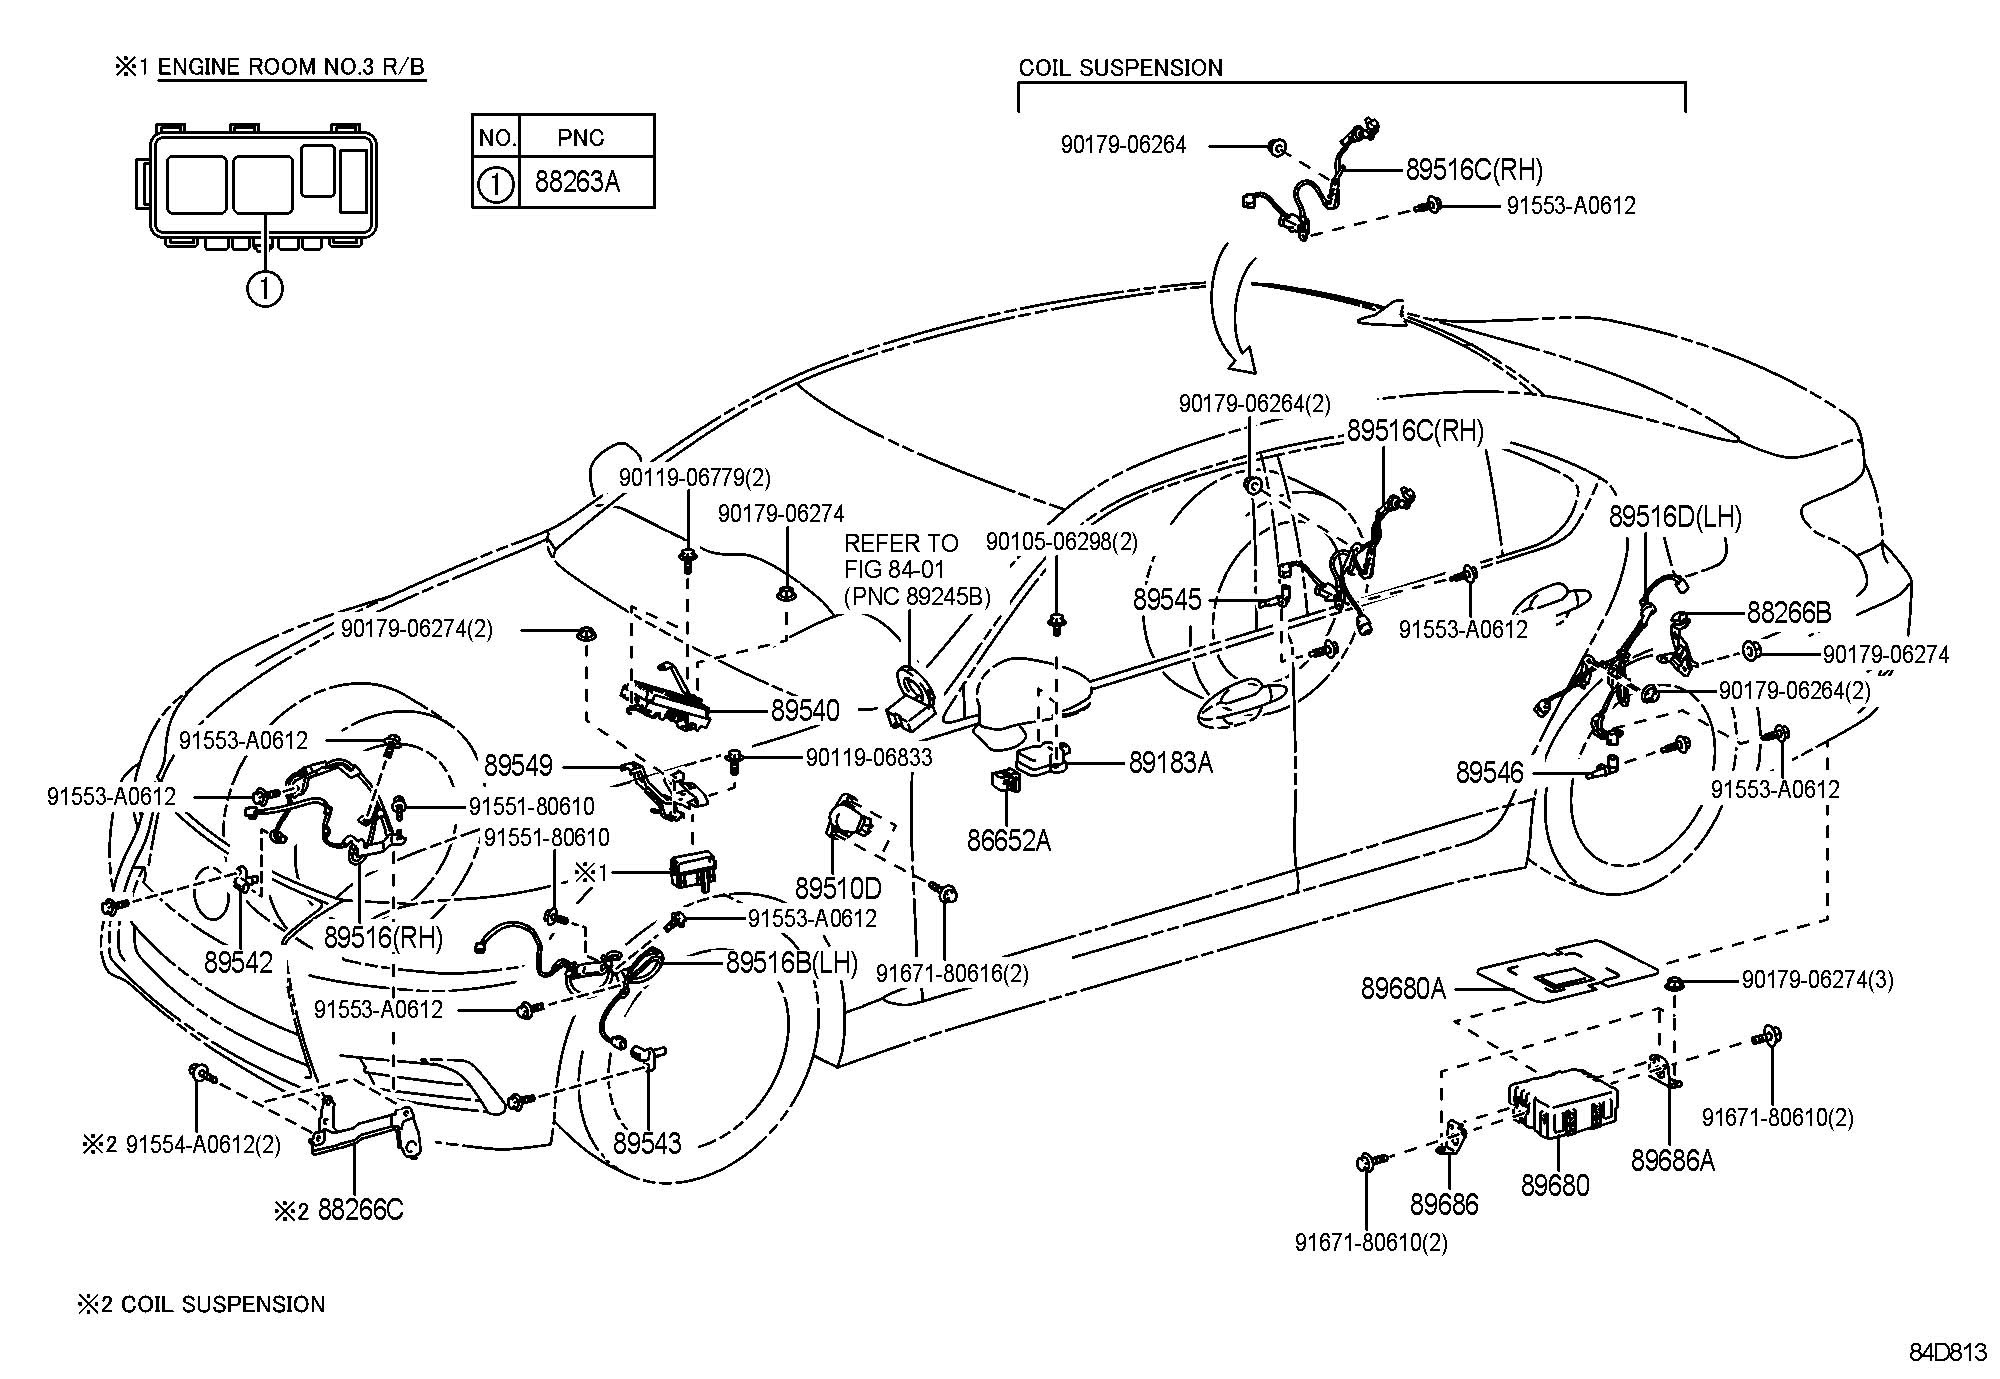 Lexus Is300 Engine Diagram Archive Of Automotive Wiring 1999 Rx300 2001 Rh Detoxicrecenze Com 2005